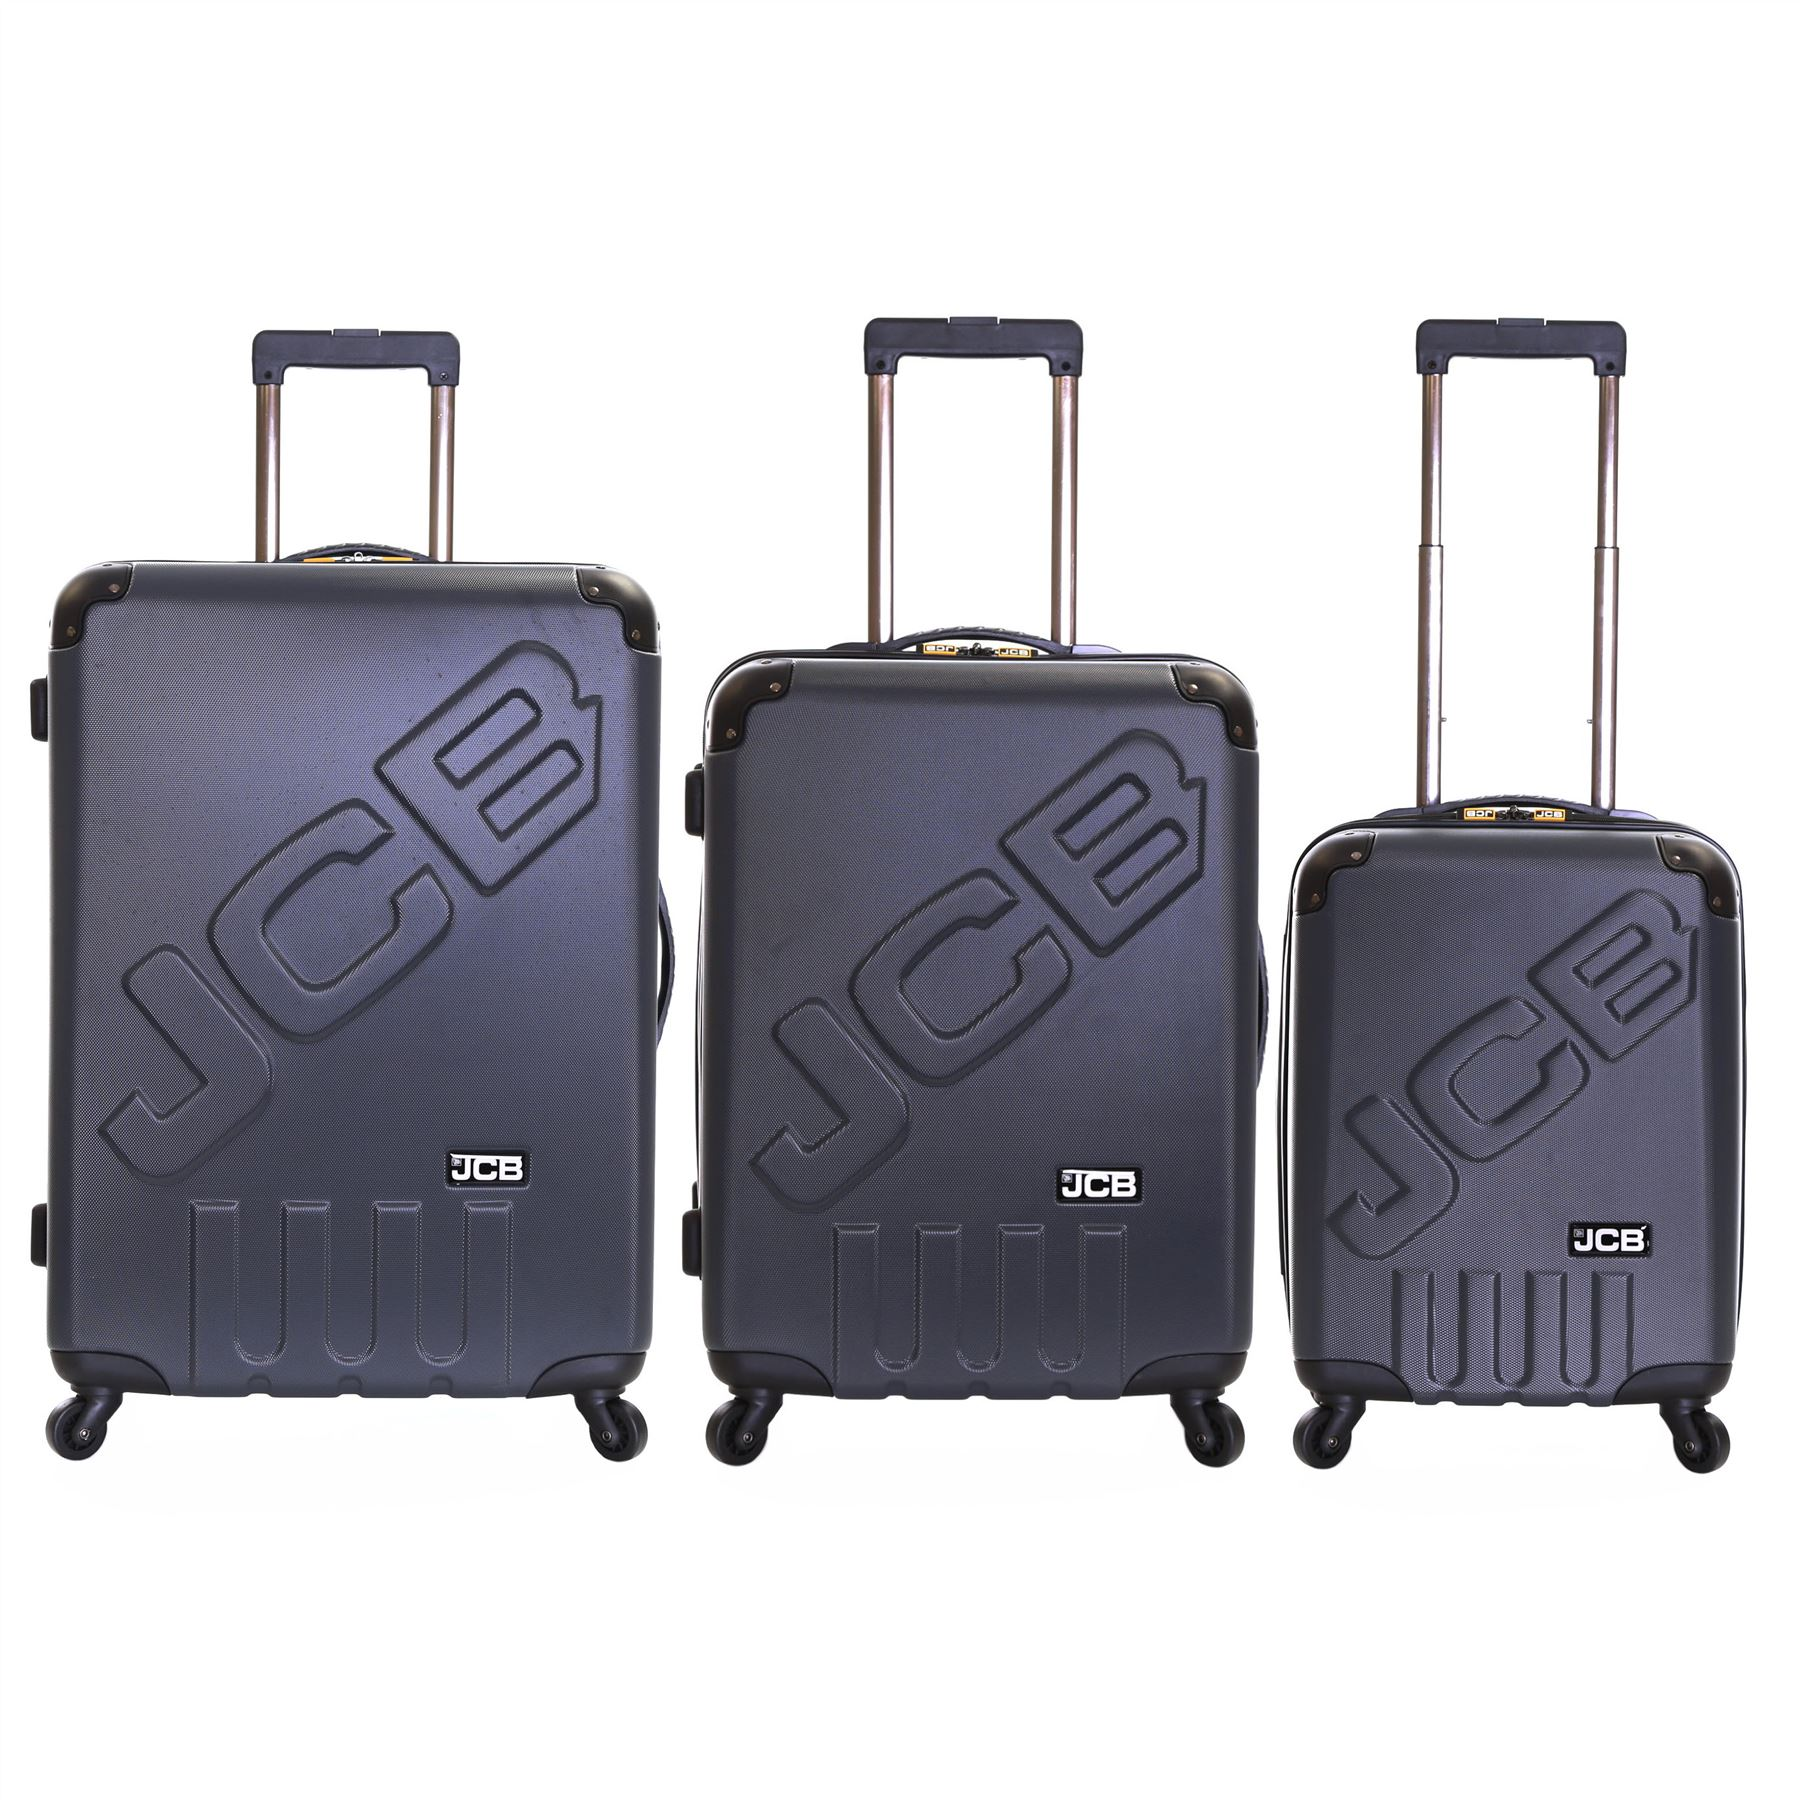 JCB Hard Side ABS Travel 4 Spinner Wheels Trolley Luggage Suitcase ...